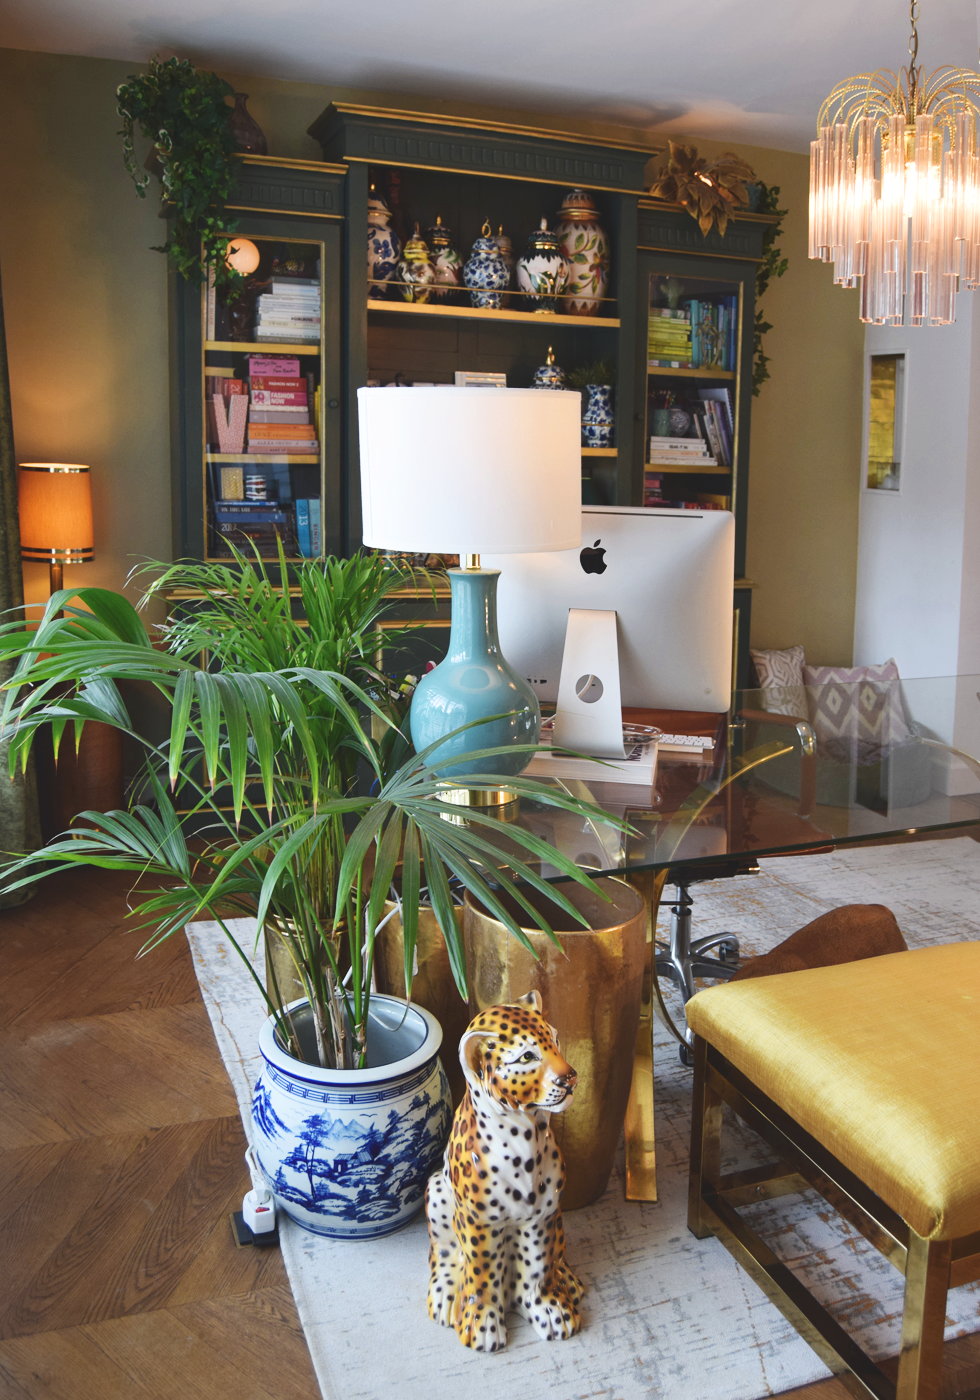 Interior, ARTE, Onlinetapijten, A La Collection, Farrow&Ball, office, desk, eclectic, hollywood glam, colorful